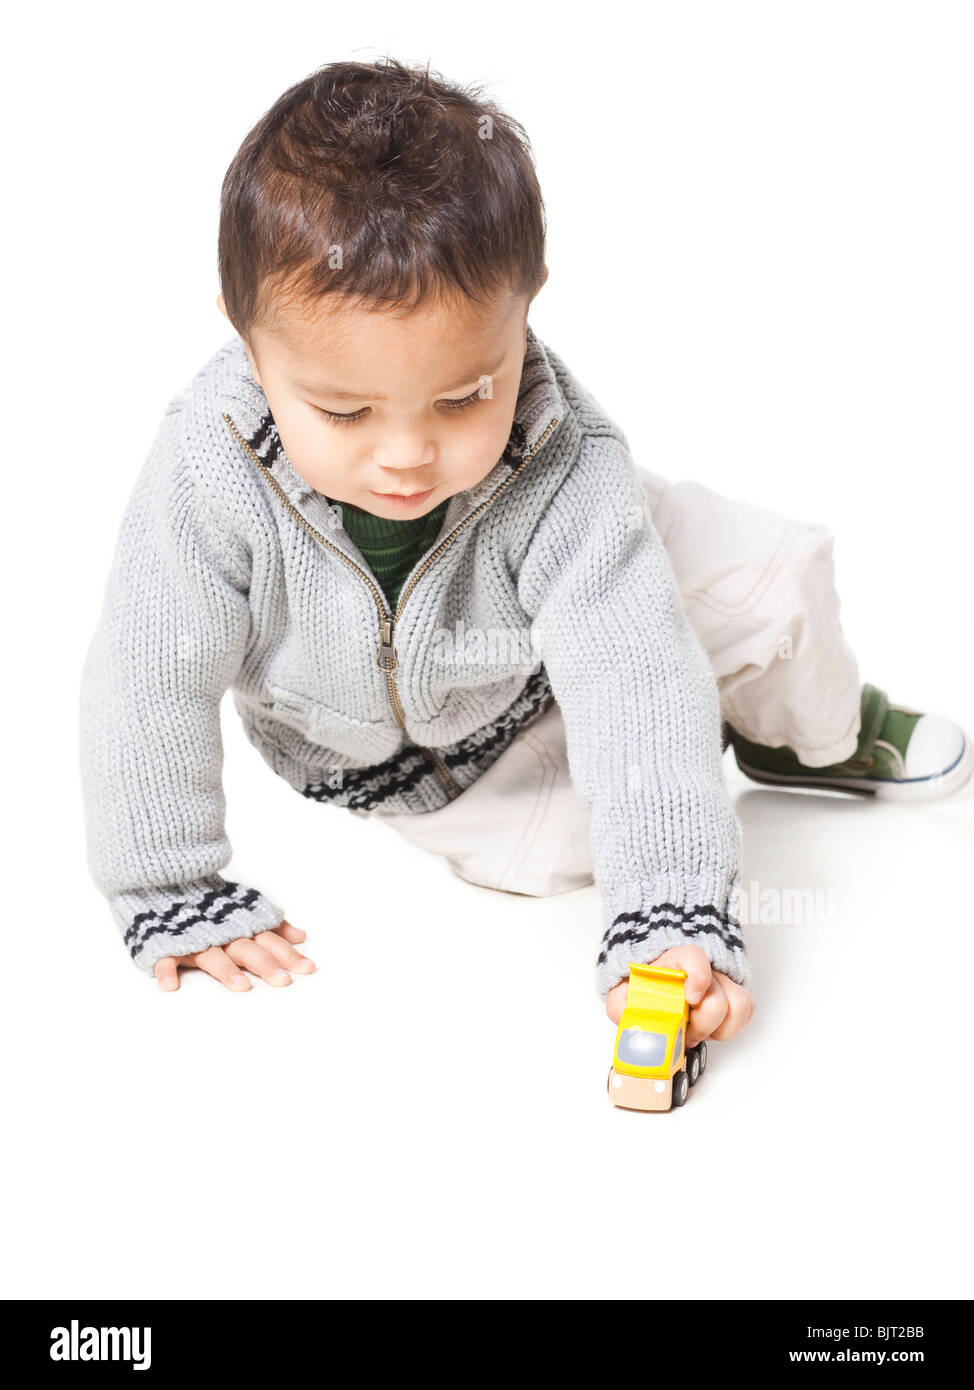 Studio shot of boy (18-23 months) playing with toy car - Stock Image